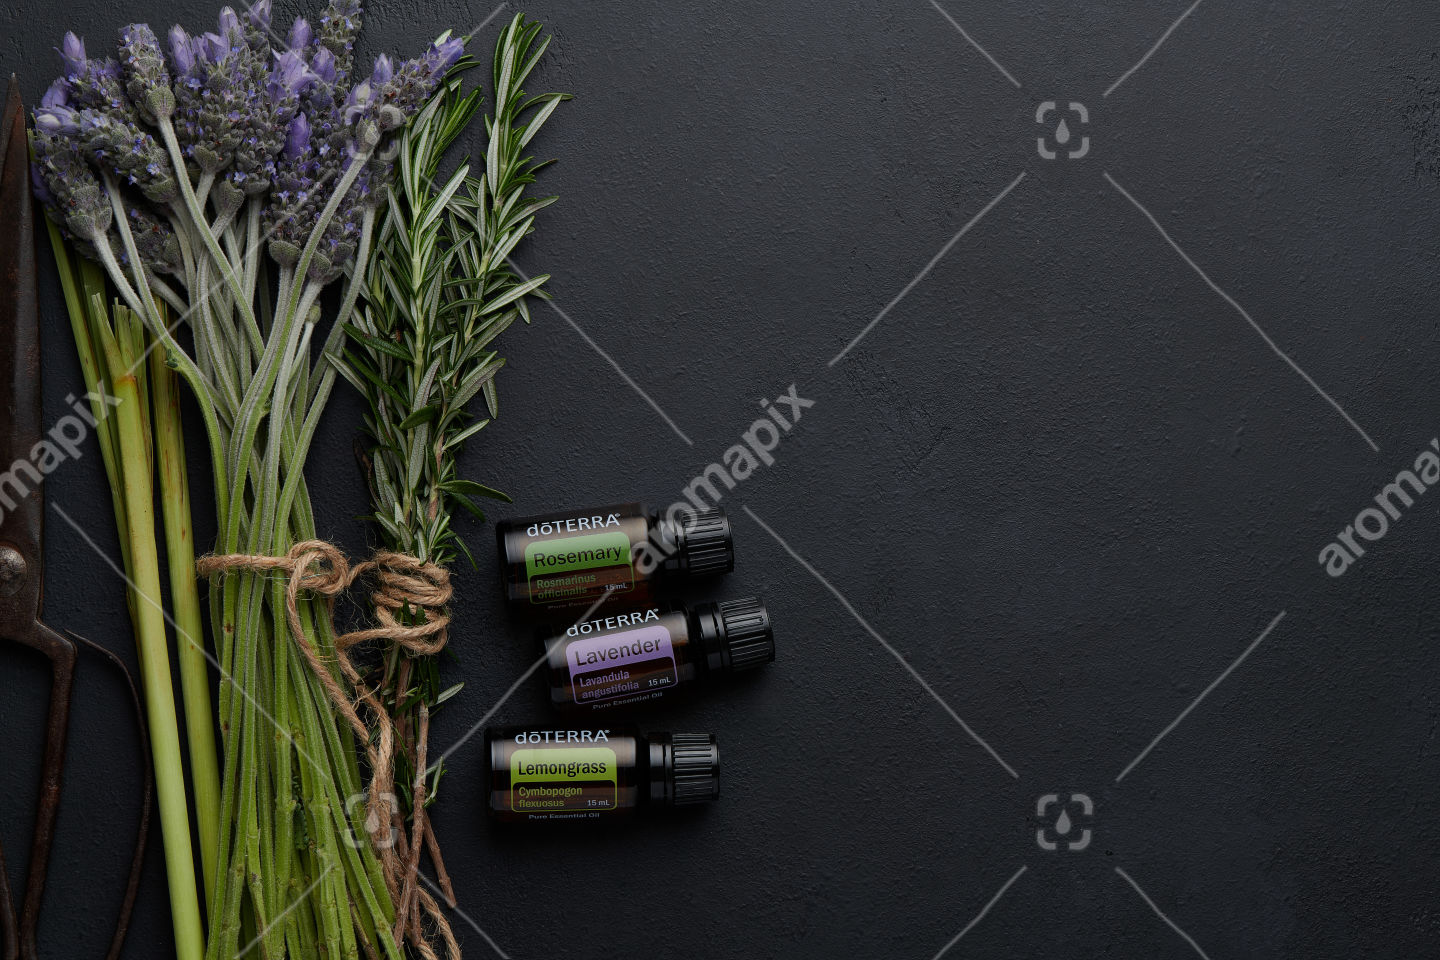 doTERRA Rosemary, Lavender and Lemongrass  with lavender and rosemary flowers and lemongrass flowers on black